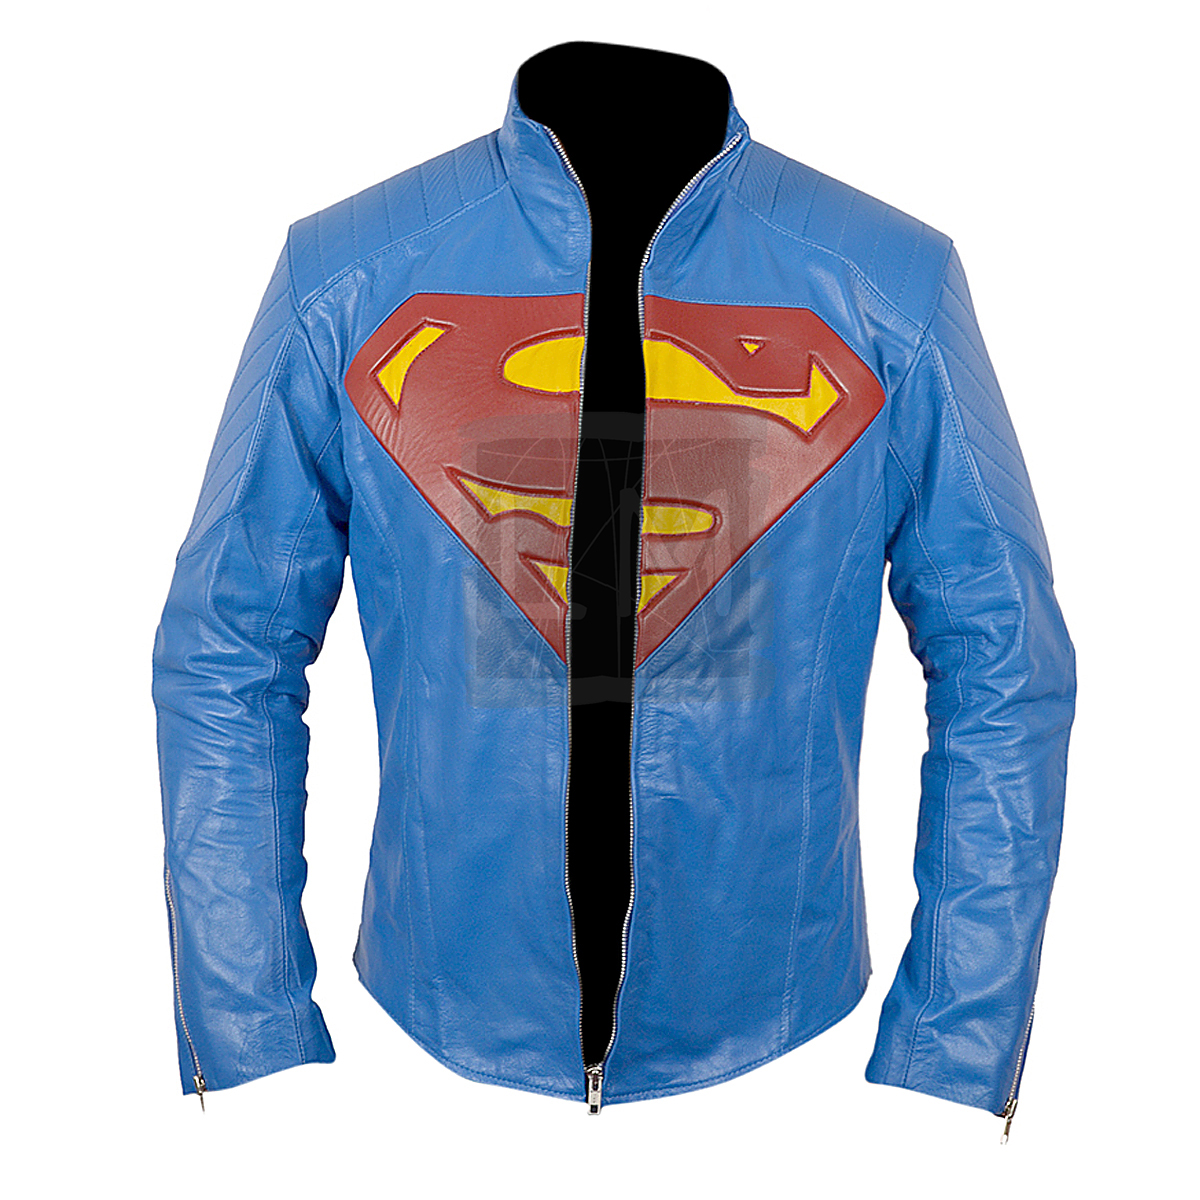 Superman Smallville Leather Jackets For Men Special Gifts For Every Superman Fans Free Shipping Worldwide. Superman is a fictional character from the very popular DC comics and is considered to be an American cultured hero.